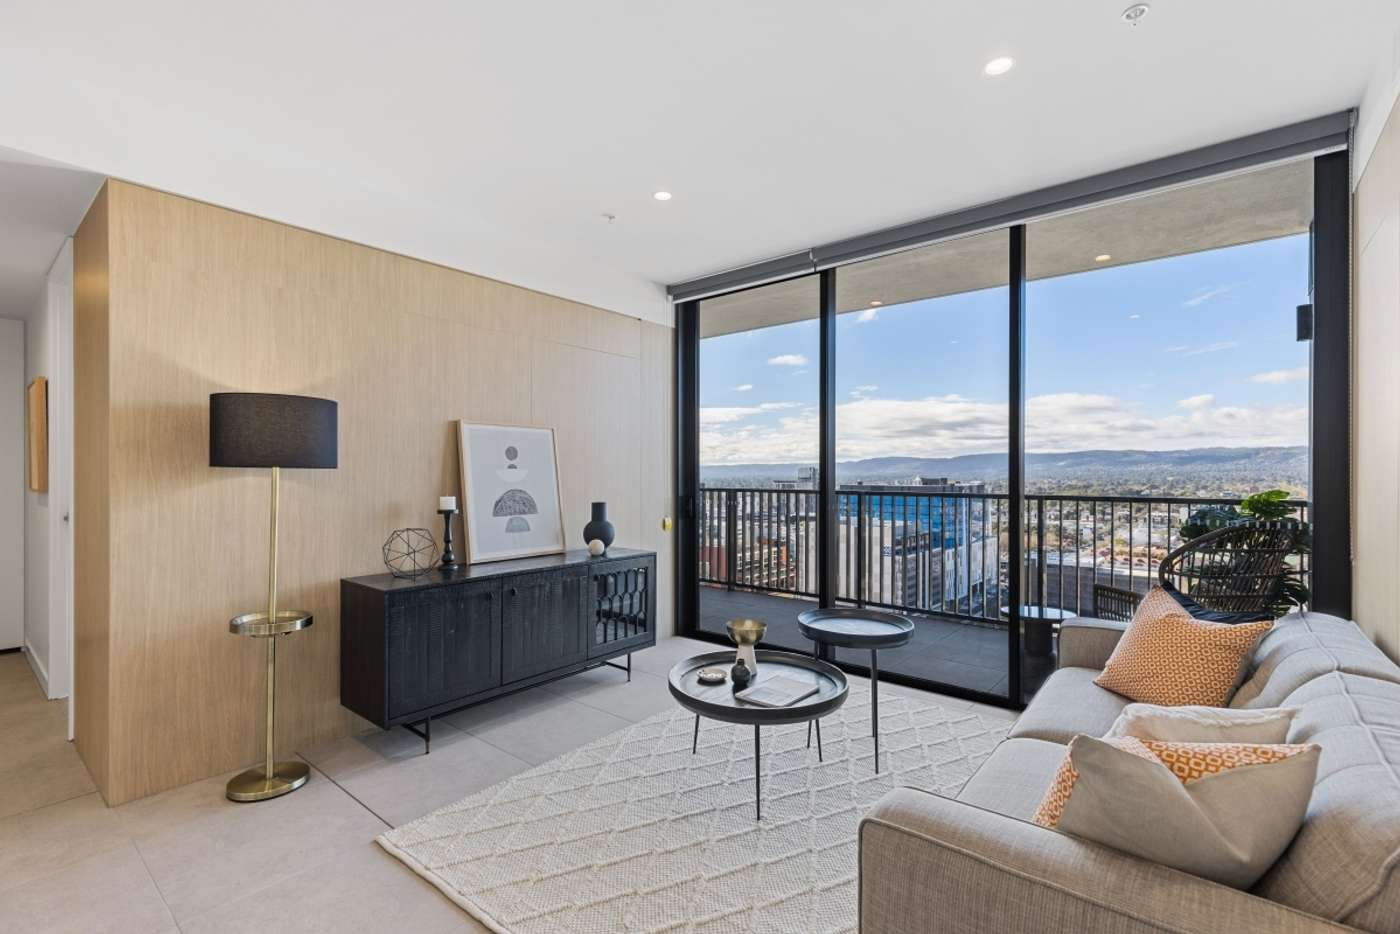 Main view of Homely apartment listing, 2102/17 Penny Place, Adelaide SA 5000